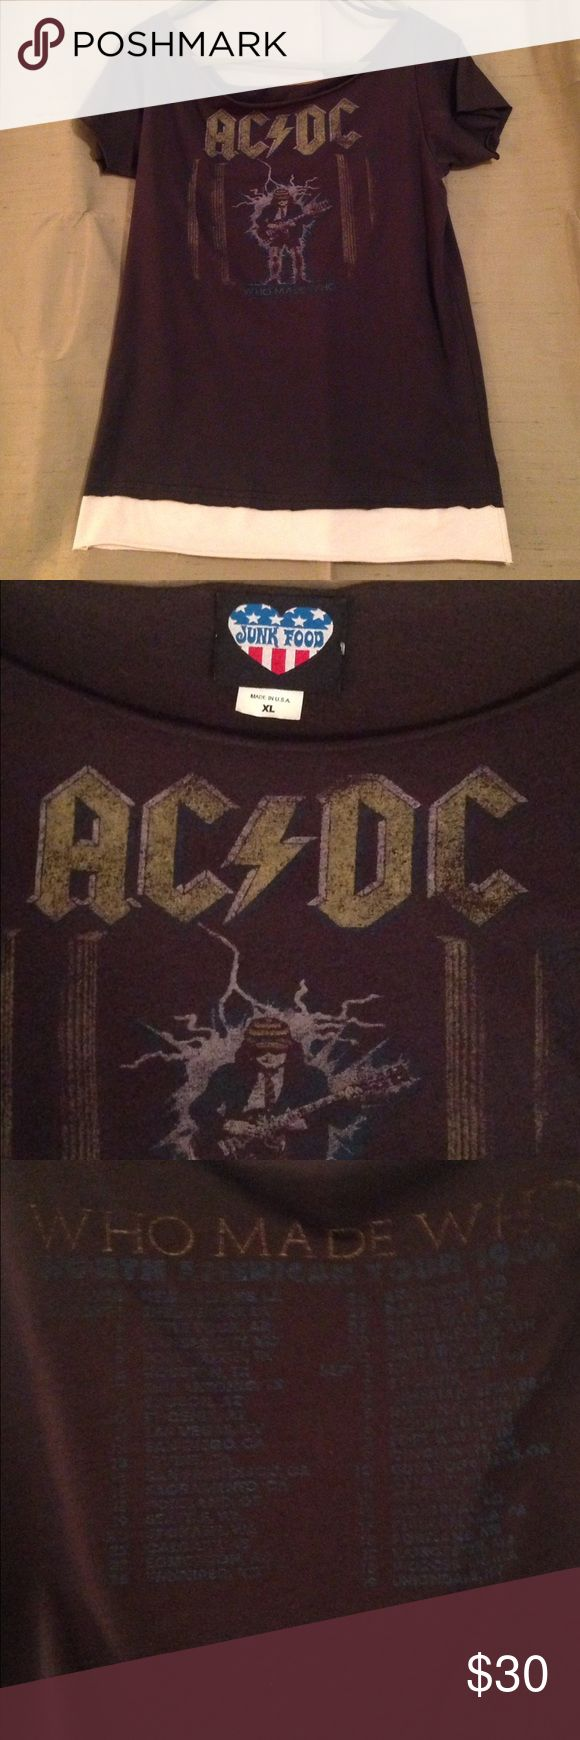 Junk Food AC/DC Tour Vintage Style T-shirt Junk Food AC/DC Tour Vintage Style T-shirt, 'Who Made Who' 1986 tour, Cotton/Poly Blend, large/x large, Like New, worn once in 20 years Junk Food Tops Tees - Short Sleeve